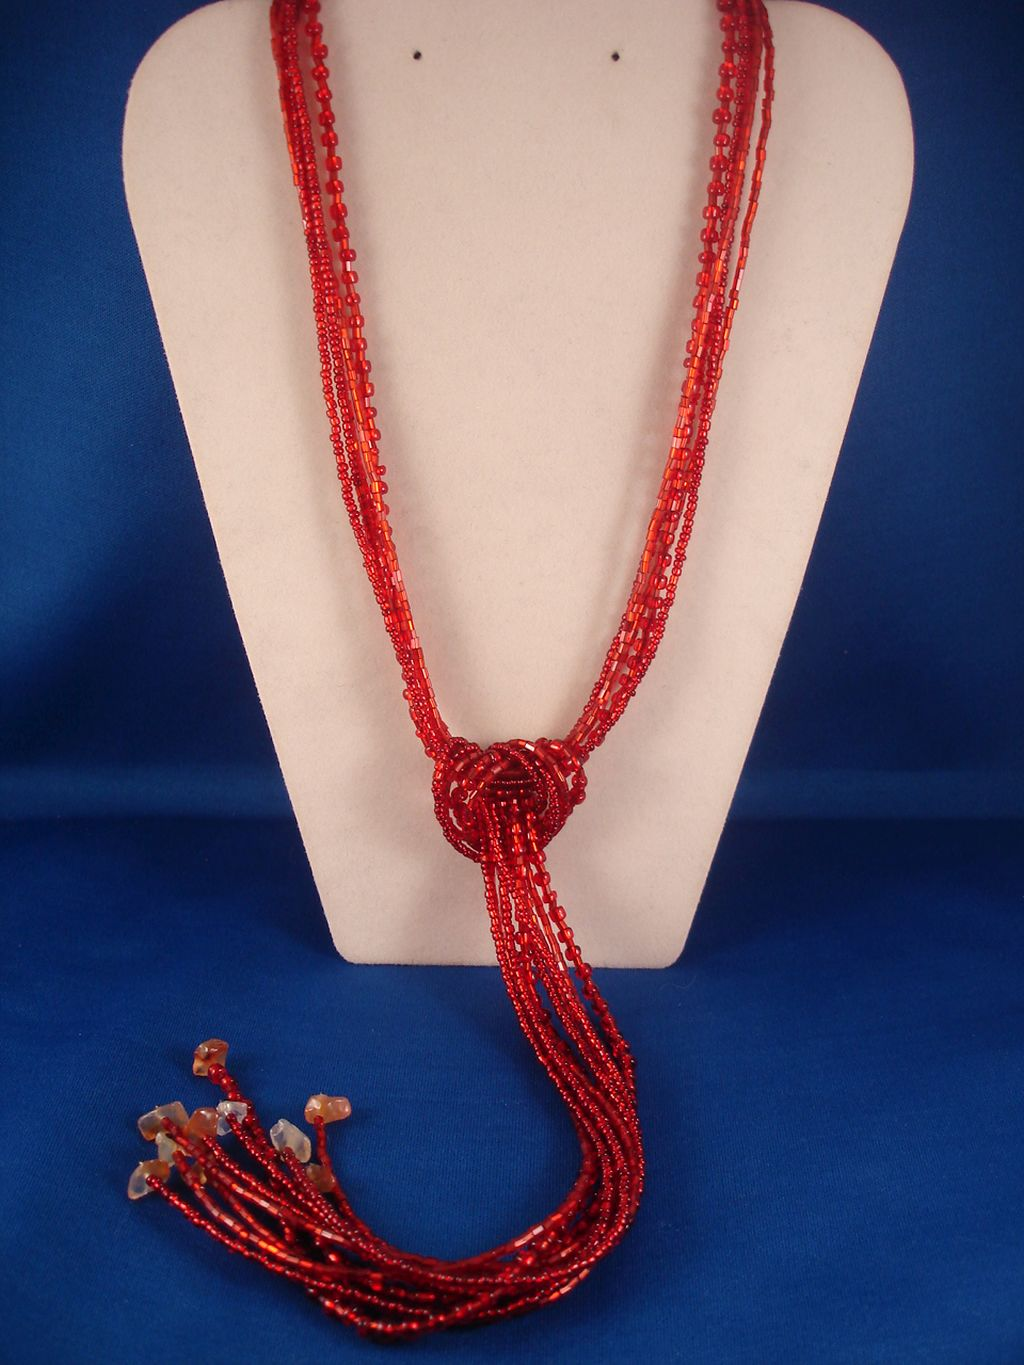 Red Beads & Genuine Stones Contemporary Knot Necklace